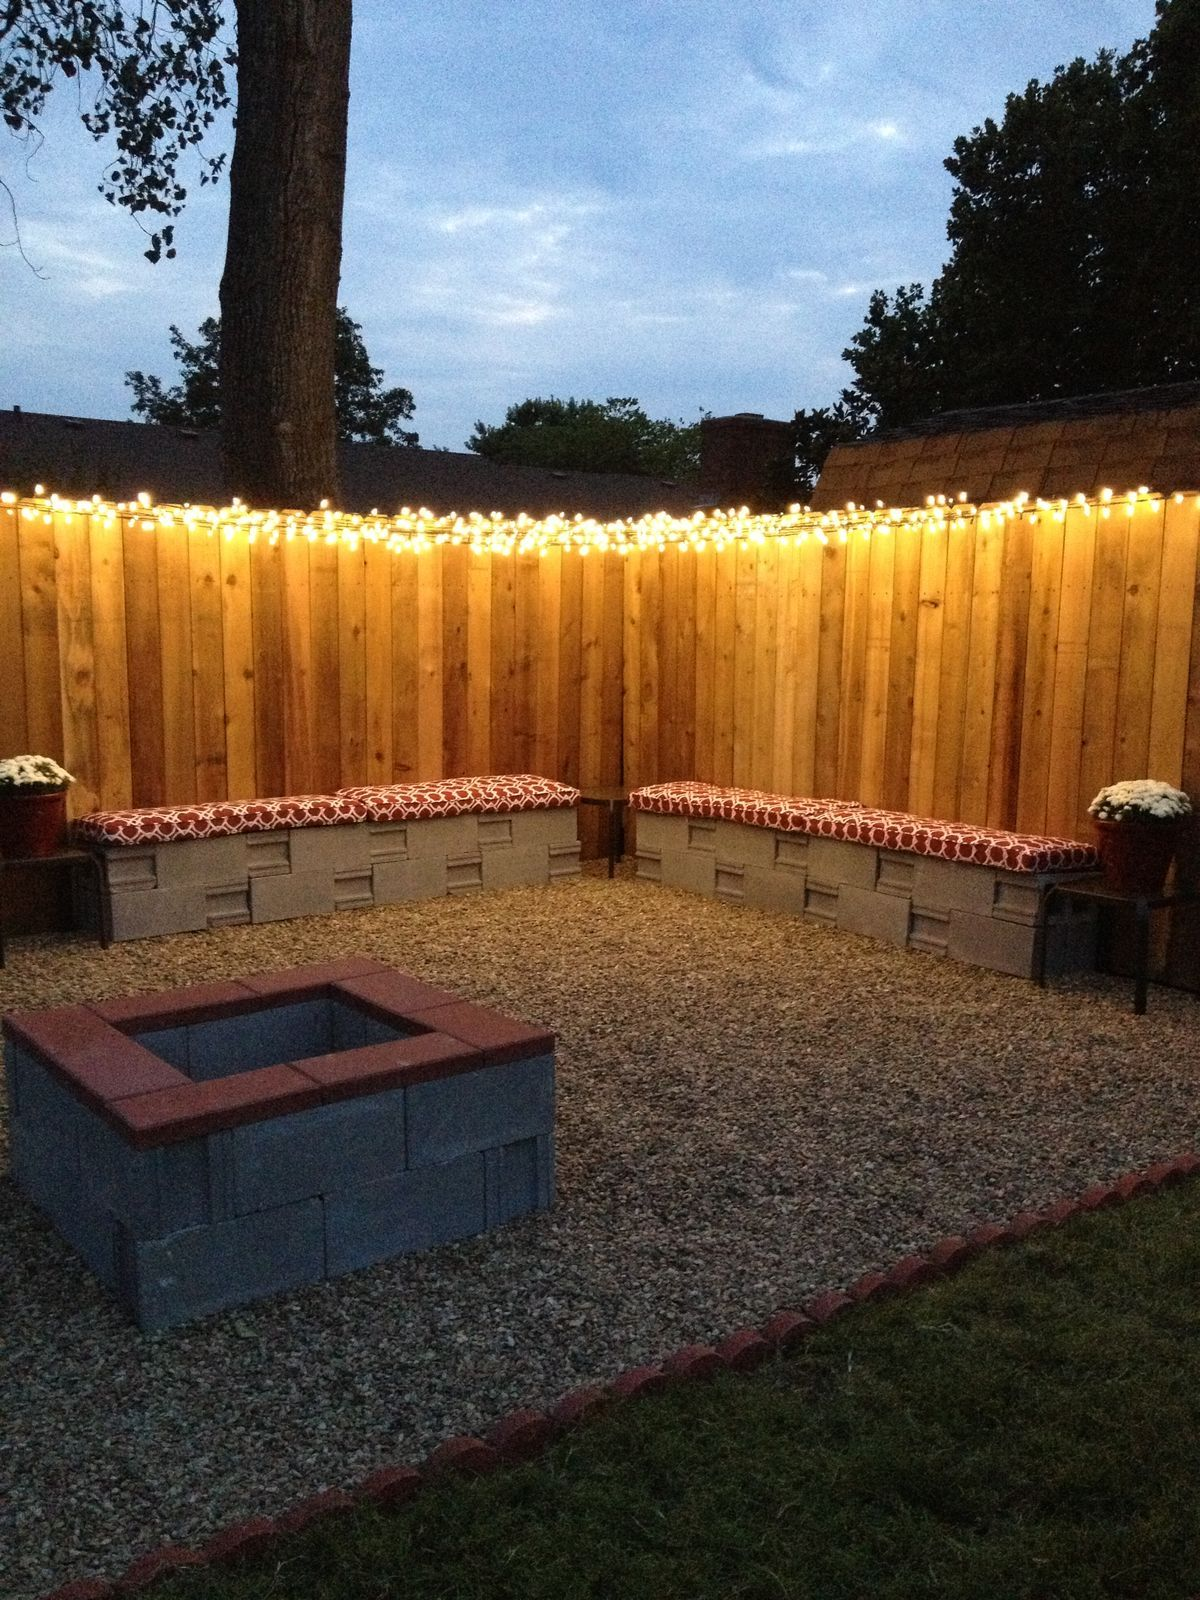 Marvelous Fairy Light Fence And Cinder Block Benches